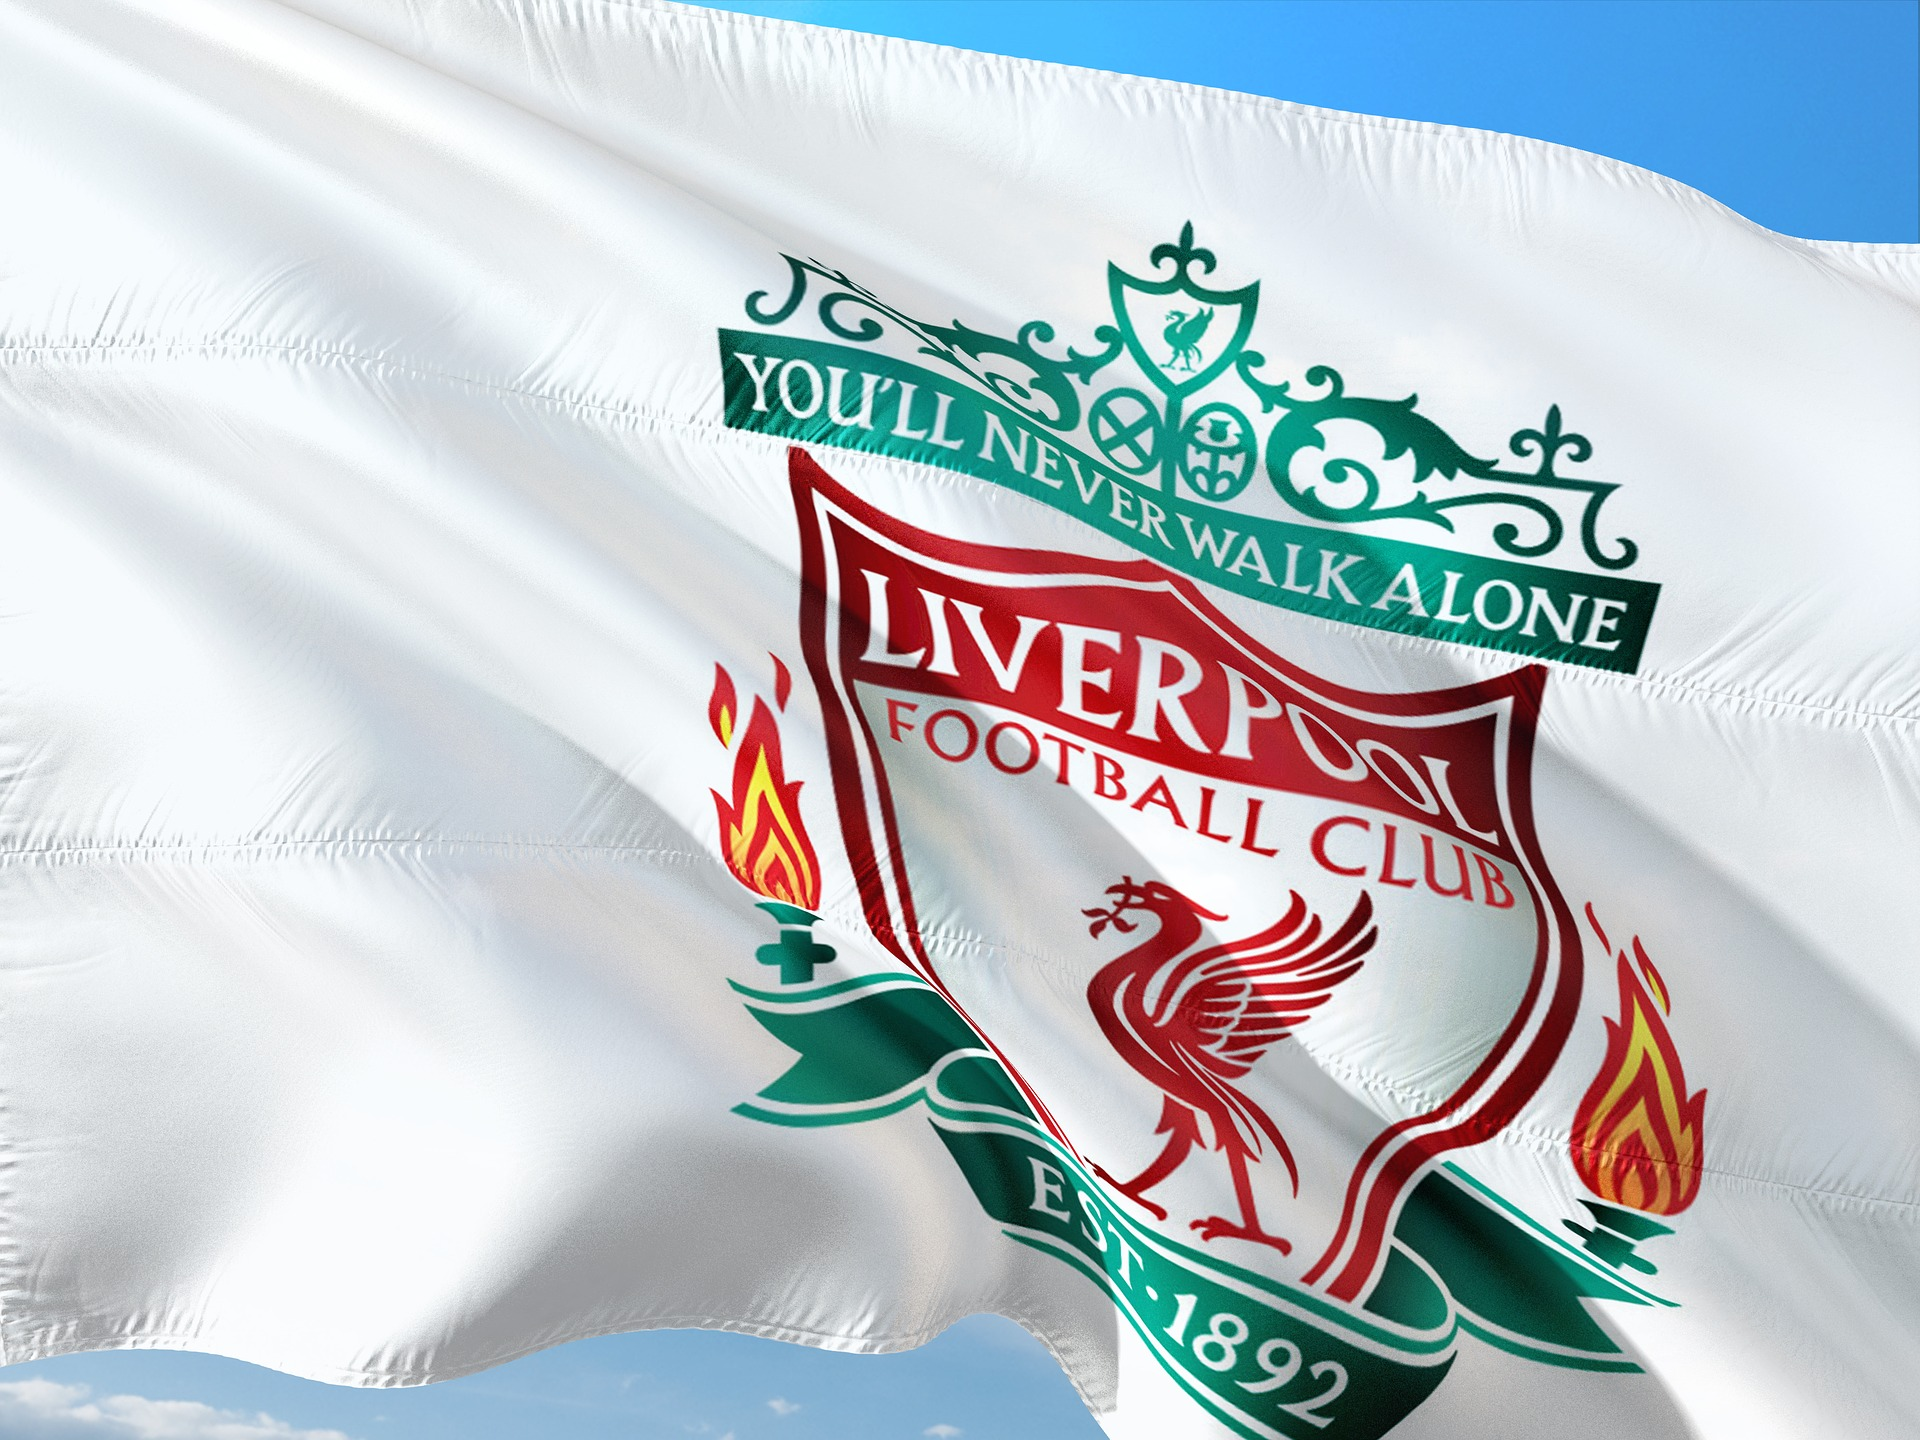 Football Foresight: Liverpool's city plans for the future